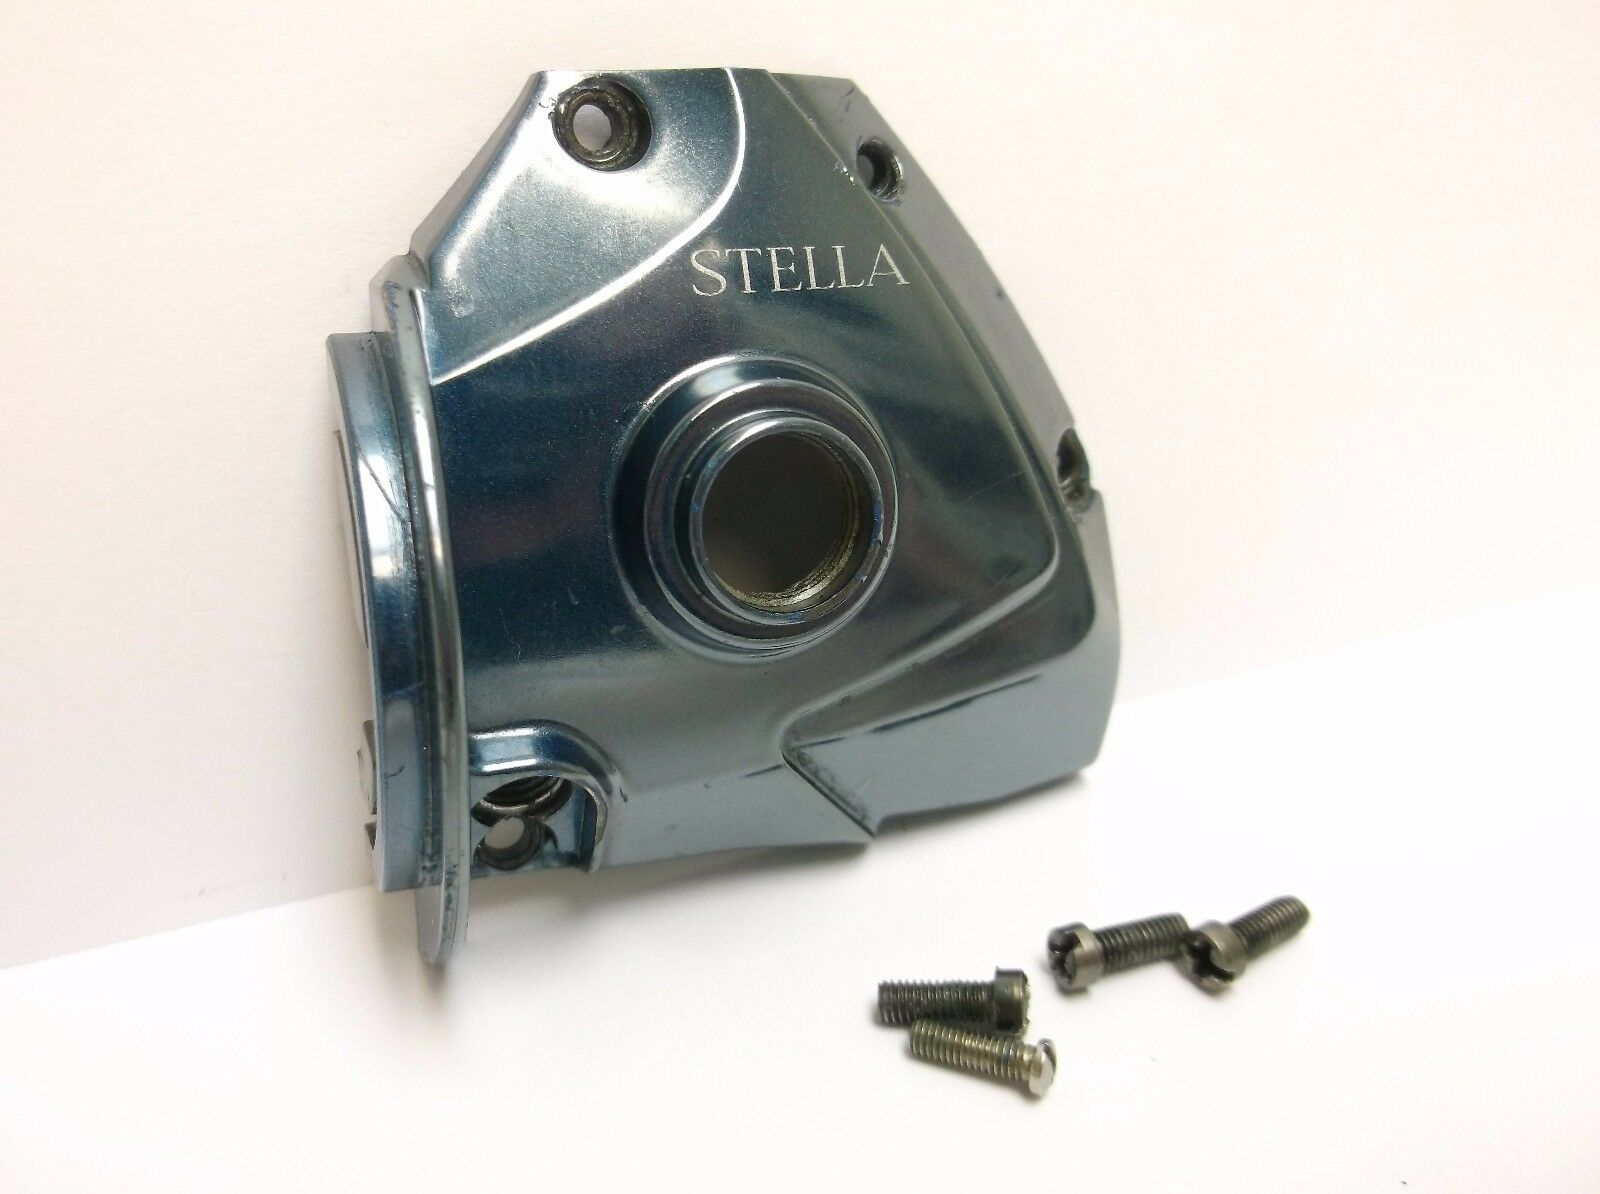 USED SHIMANO SPINNING REEL PART - Stella 8000 FA - Body Side Cover  A